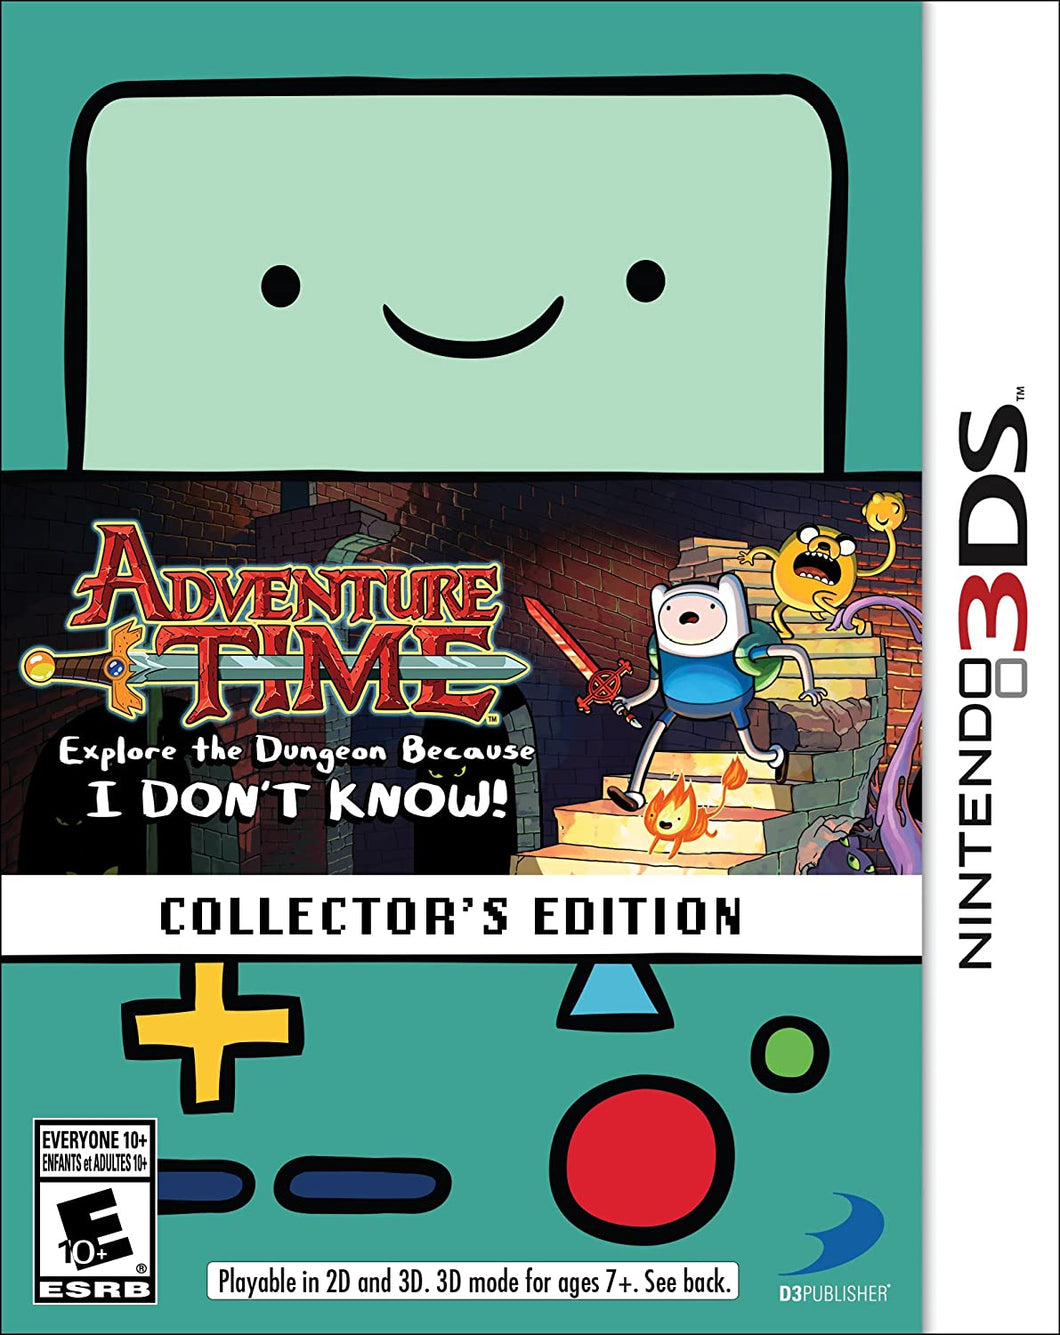 Adventure Time: Explore the Dungeon Because I Don't Know [Collector's Edition] (Nintendo 3DS)